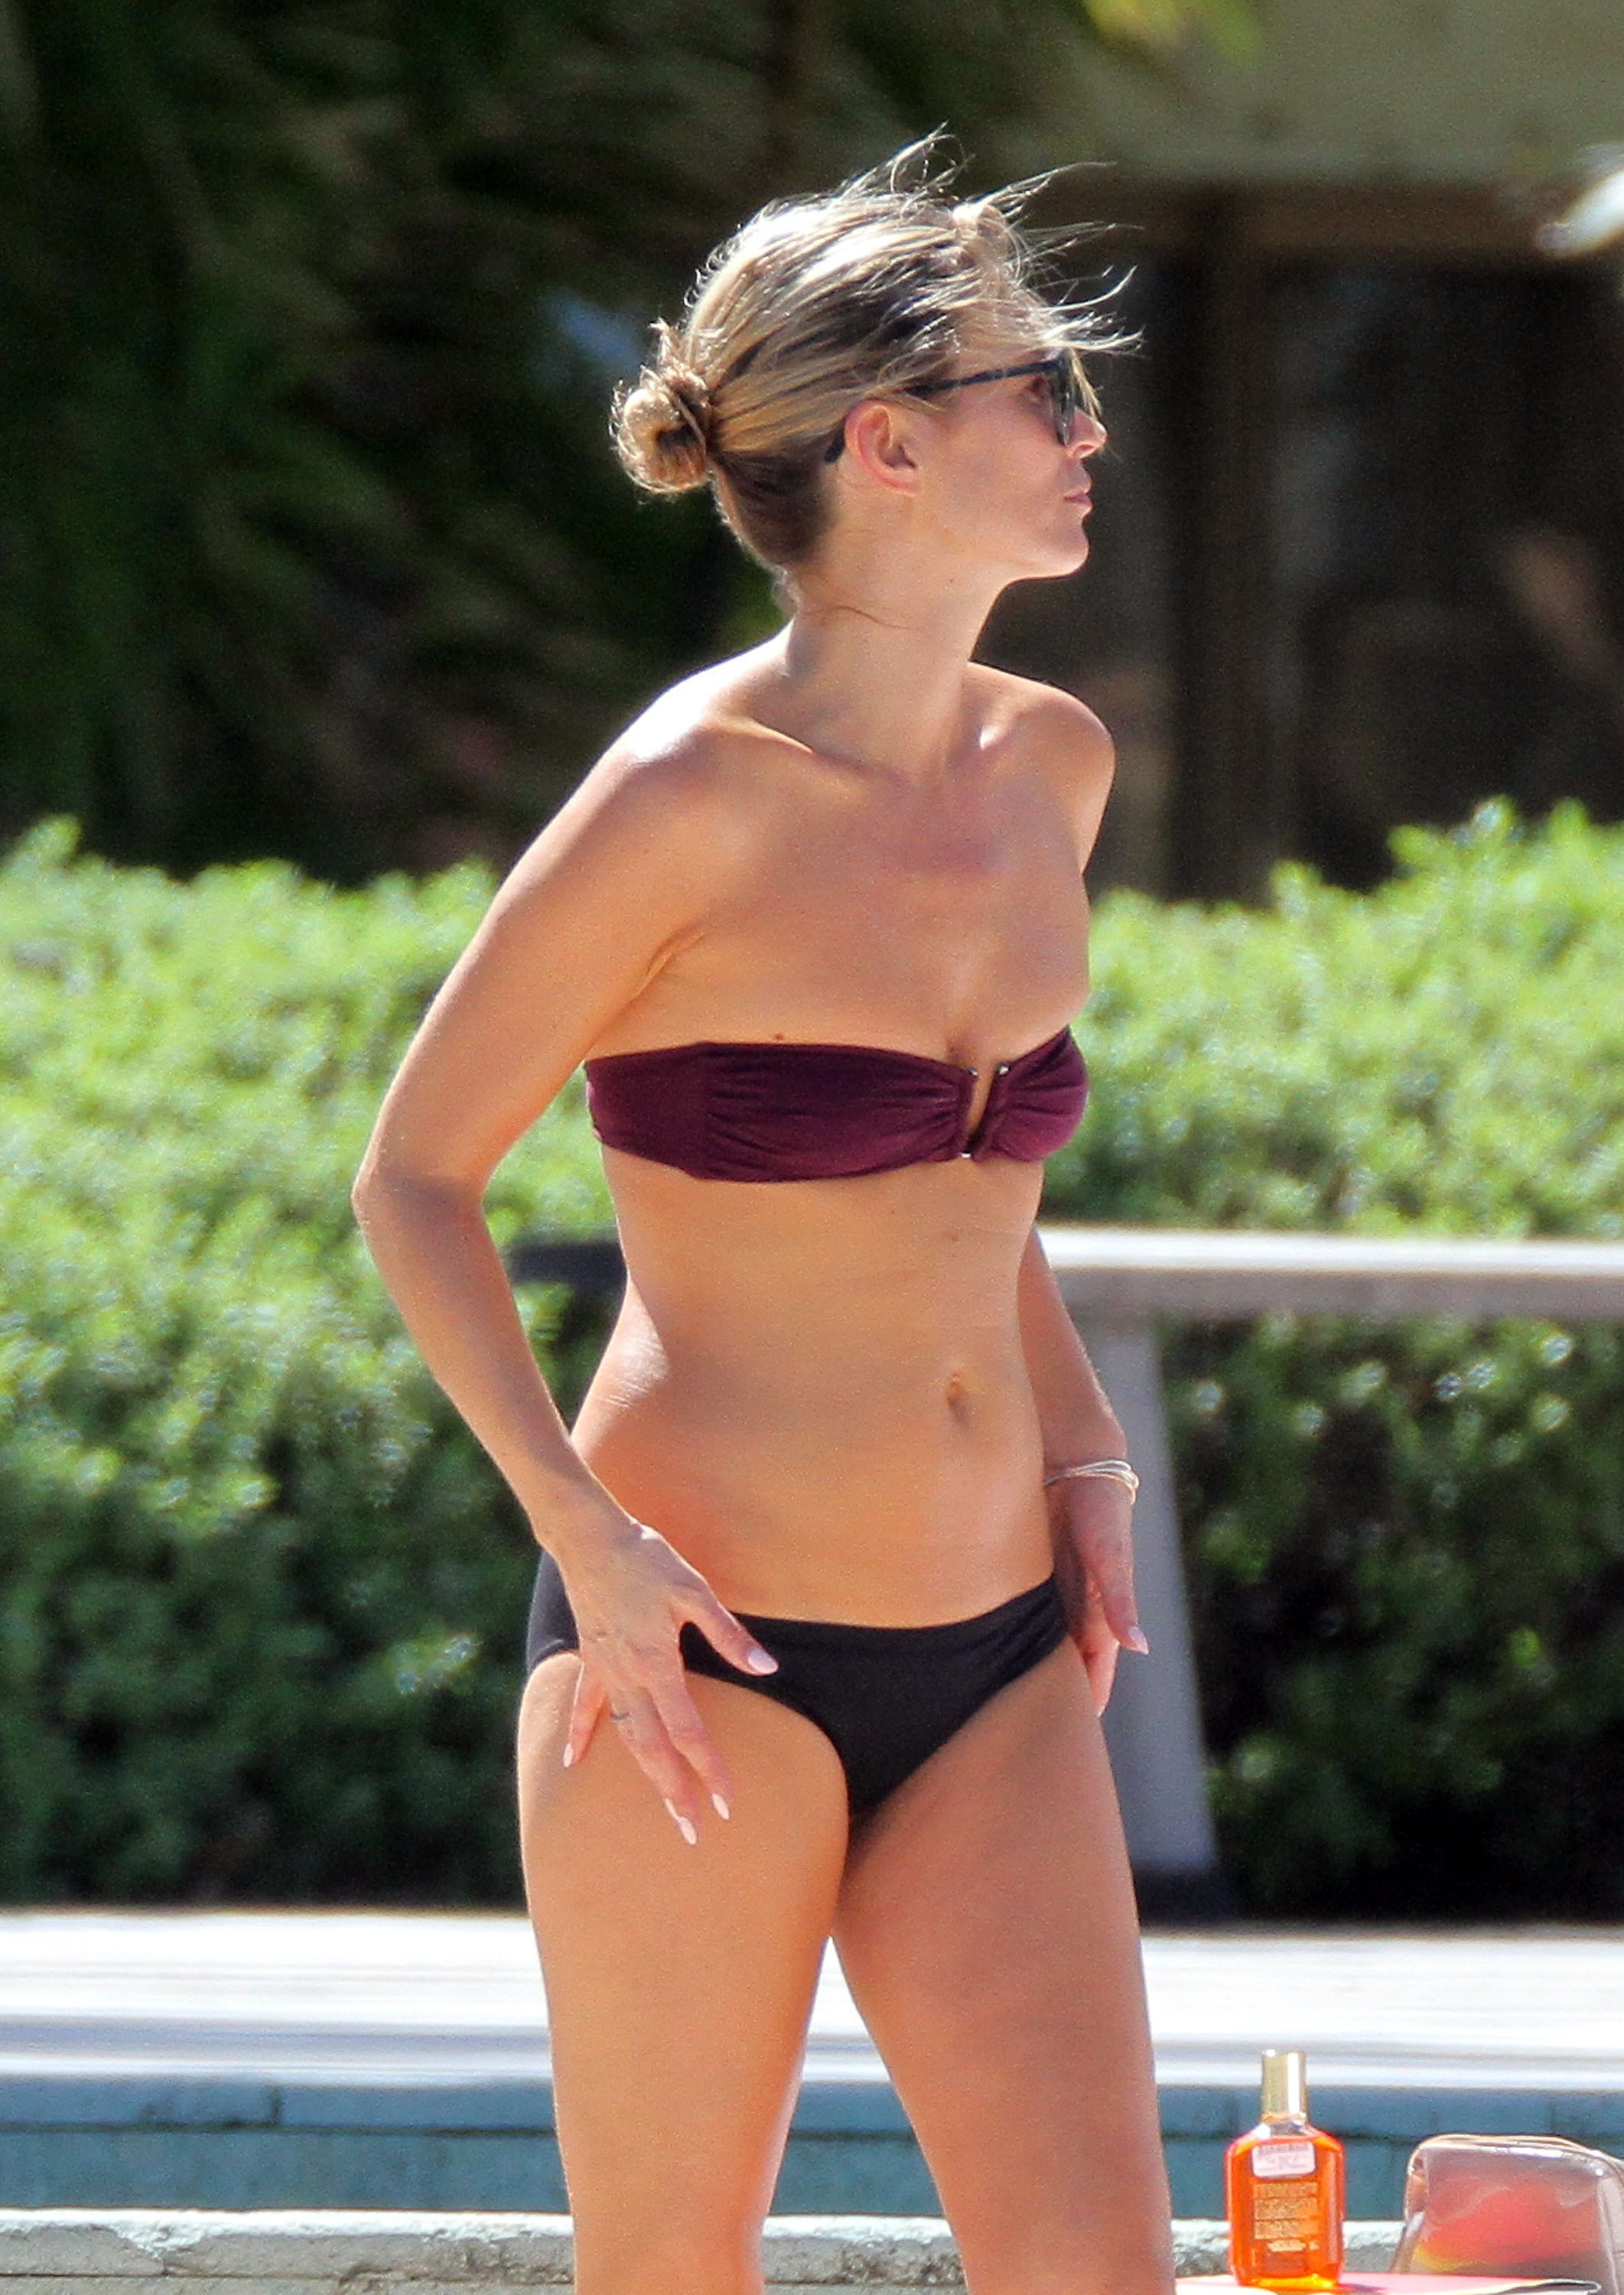 kate moss dons a tiny bikini and looks amazing (photos) | huffpost